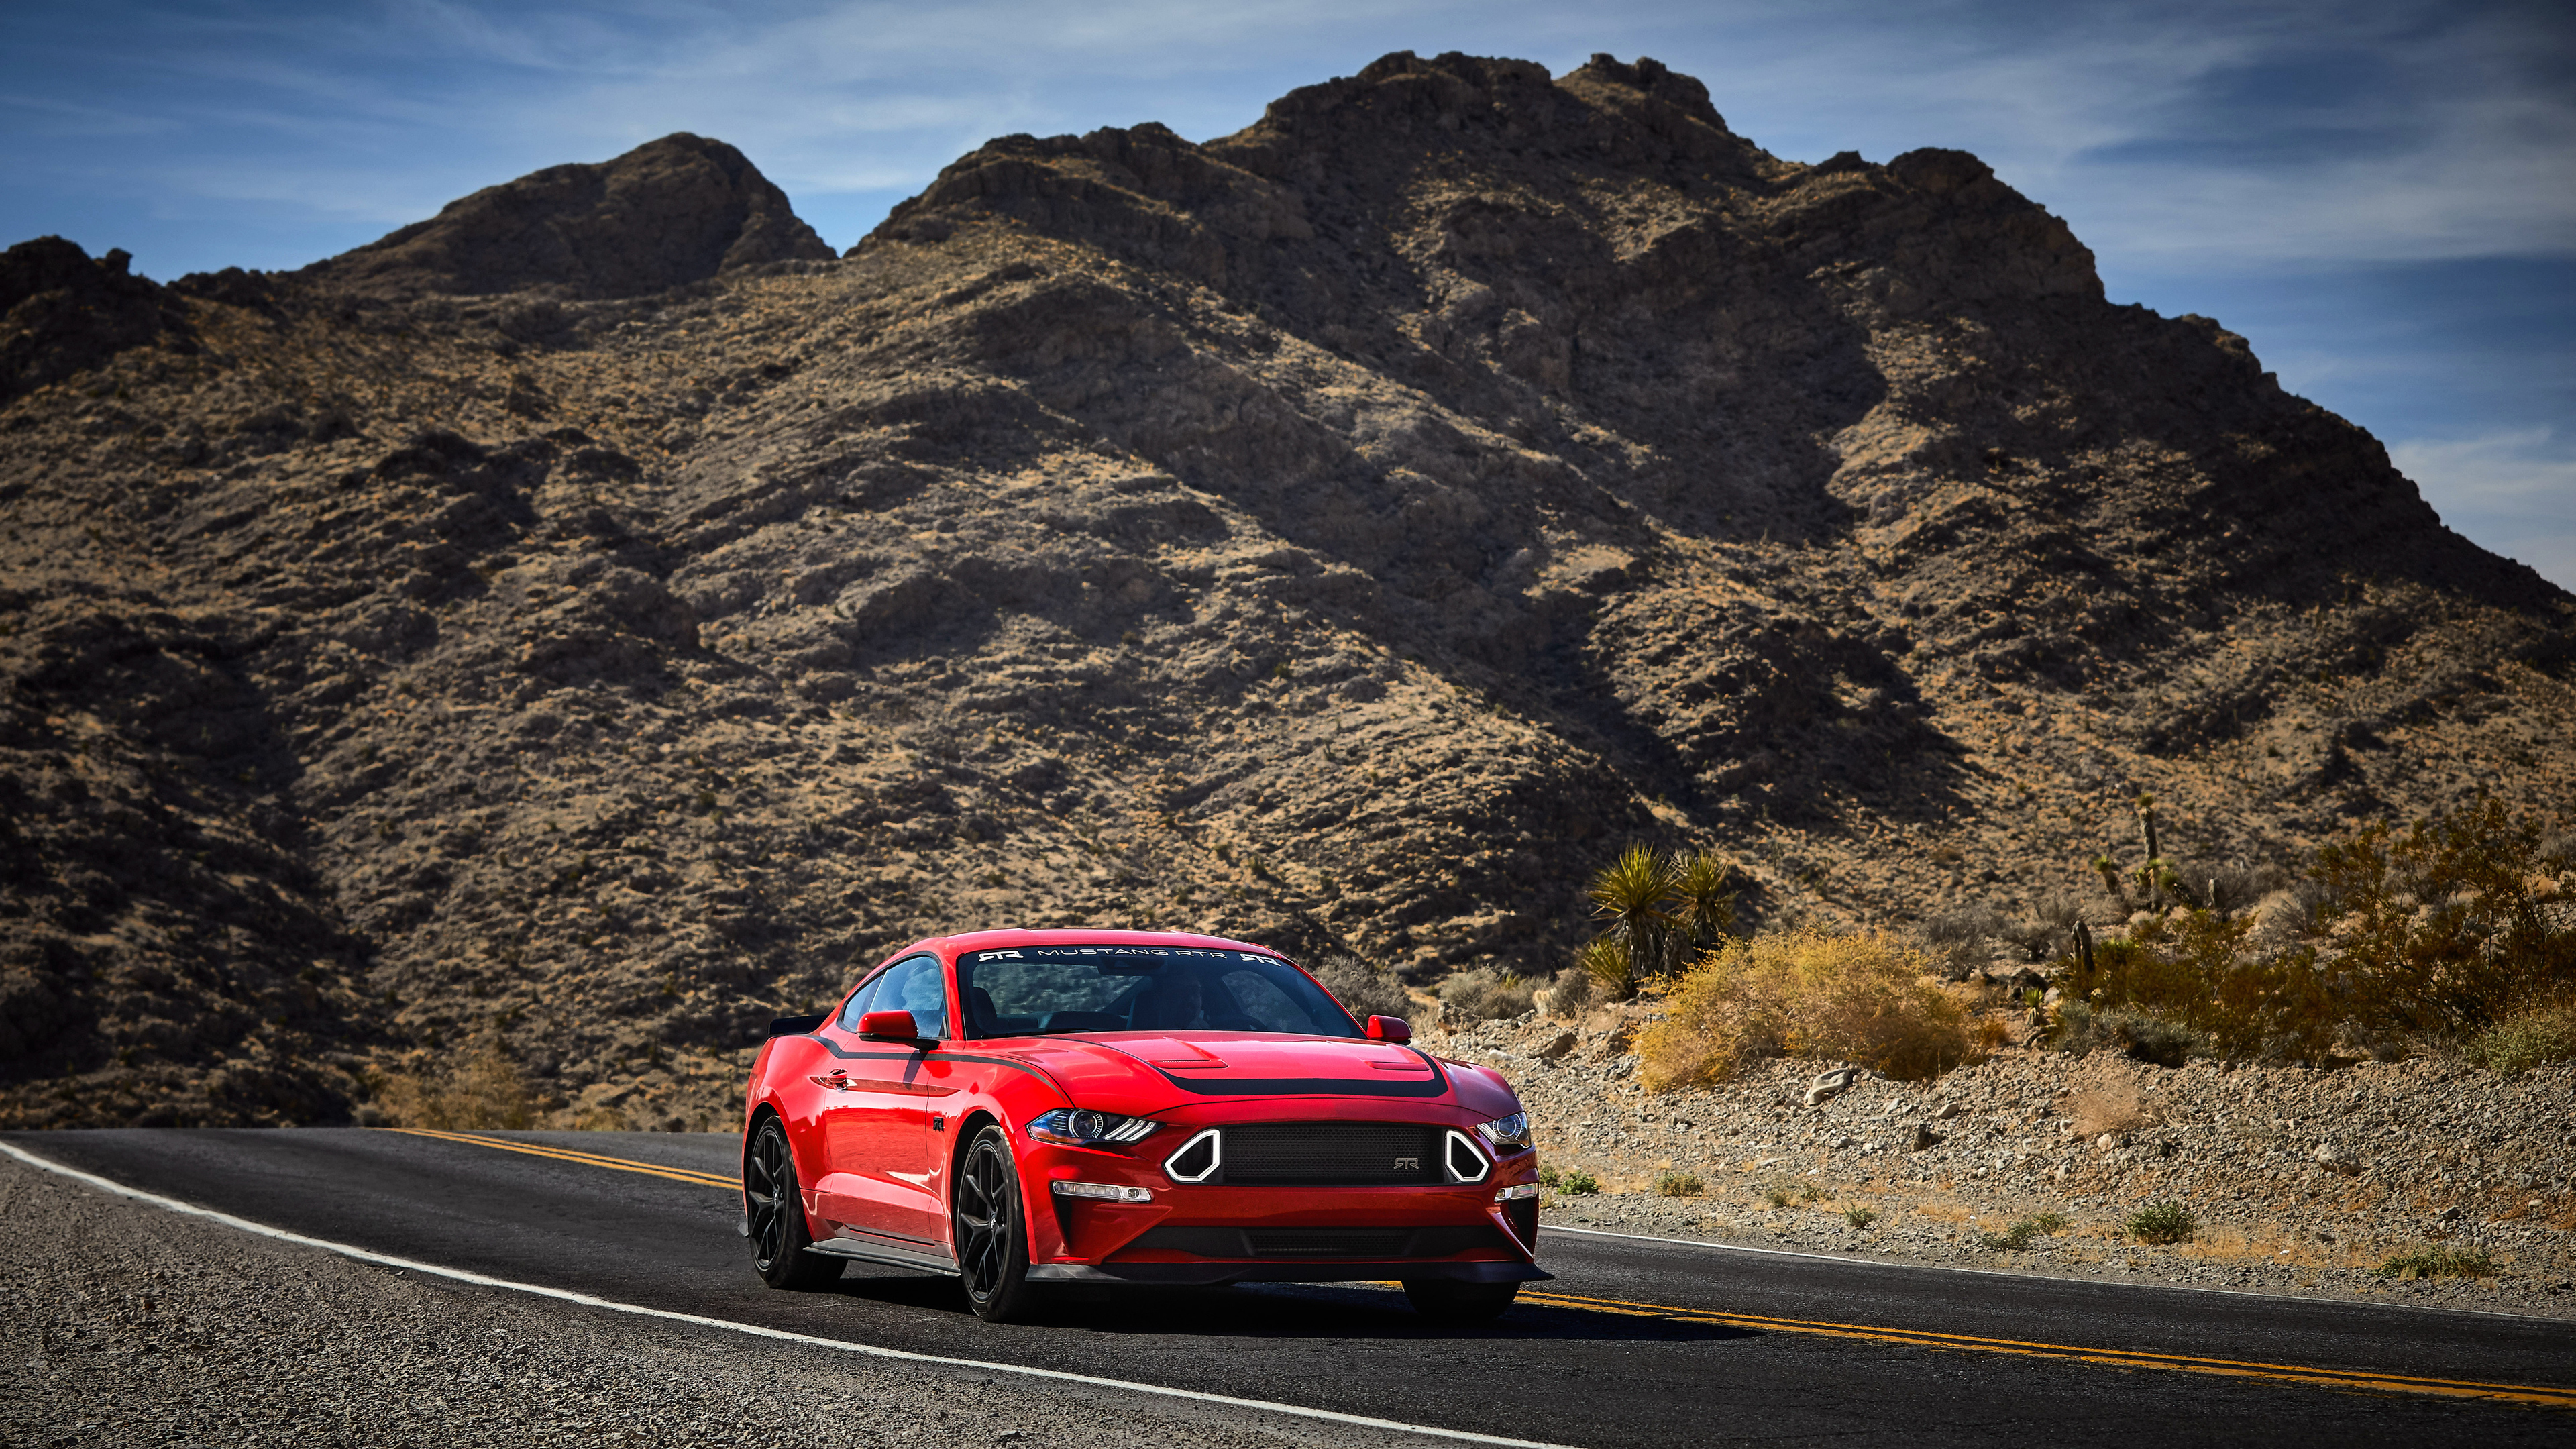 2019 ford series 1 mustang rtr 4k 1541969144 - 2019 Ford Series 1 Mustang RTR 4k - mustang wallpapers, hd-wallpapers, ford wallpapers, ford mustang wallpapers, 4k-wallpapers, 2018 cars wallpapers